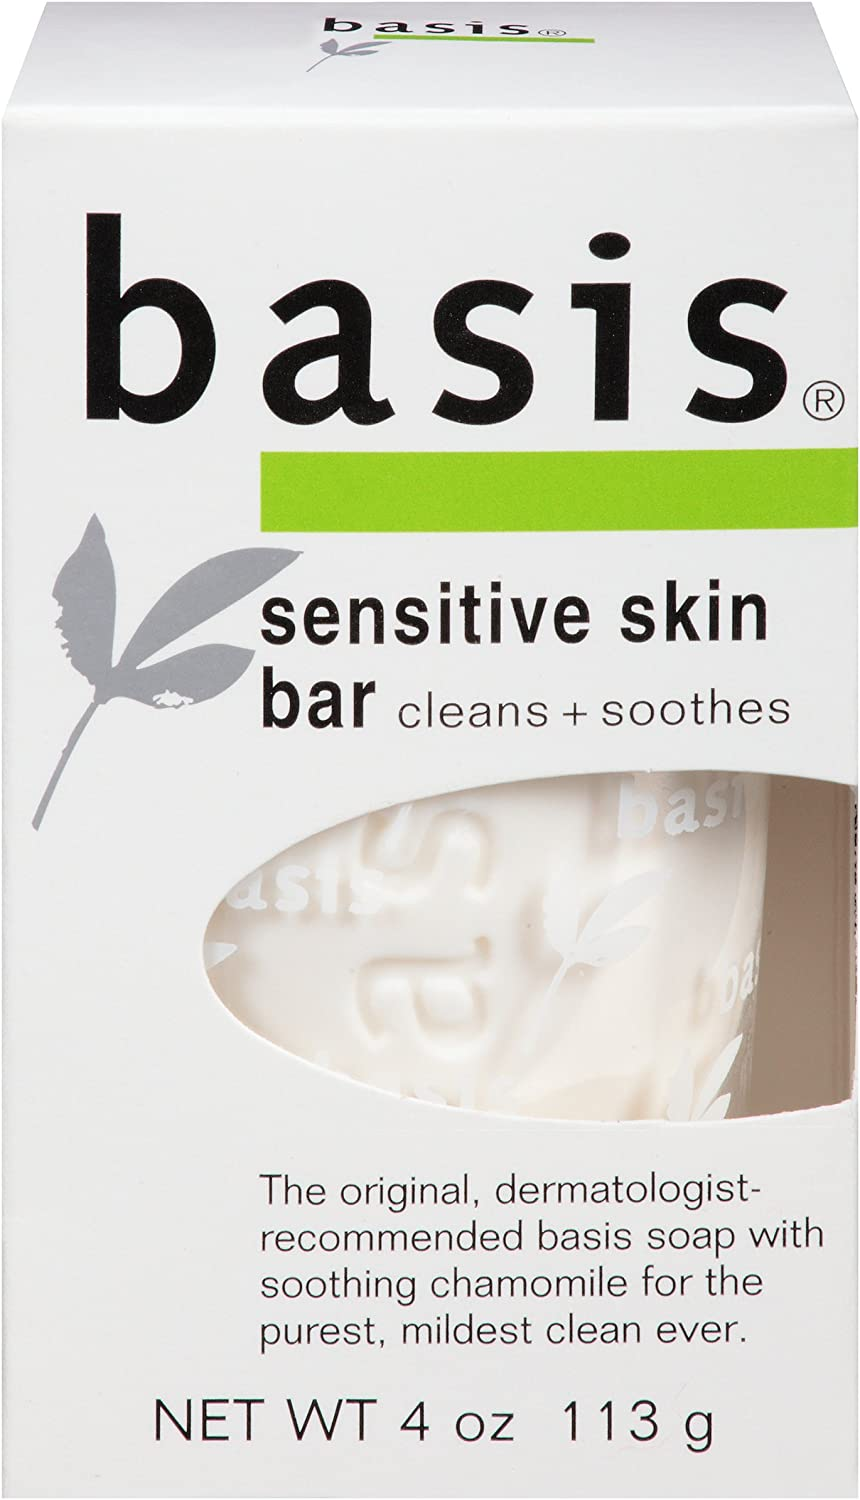 Basis Sensitive Skin Bar Soap – Body Wash Bar Cleans and Soothes with Chamomile and Aloe Vera – 4 oz. Bar Soap Pack of 6